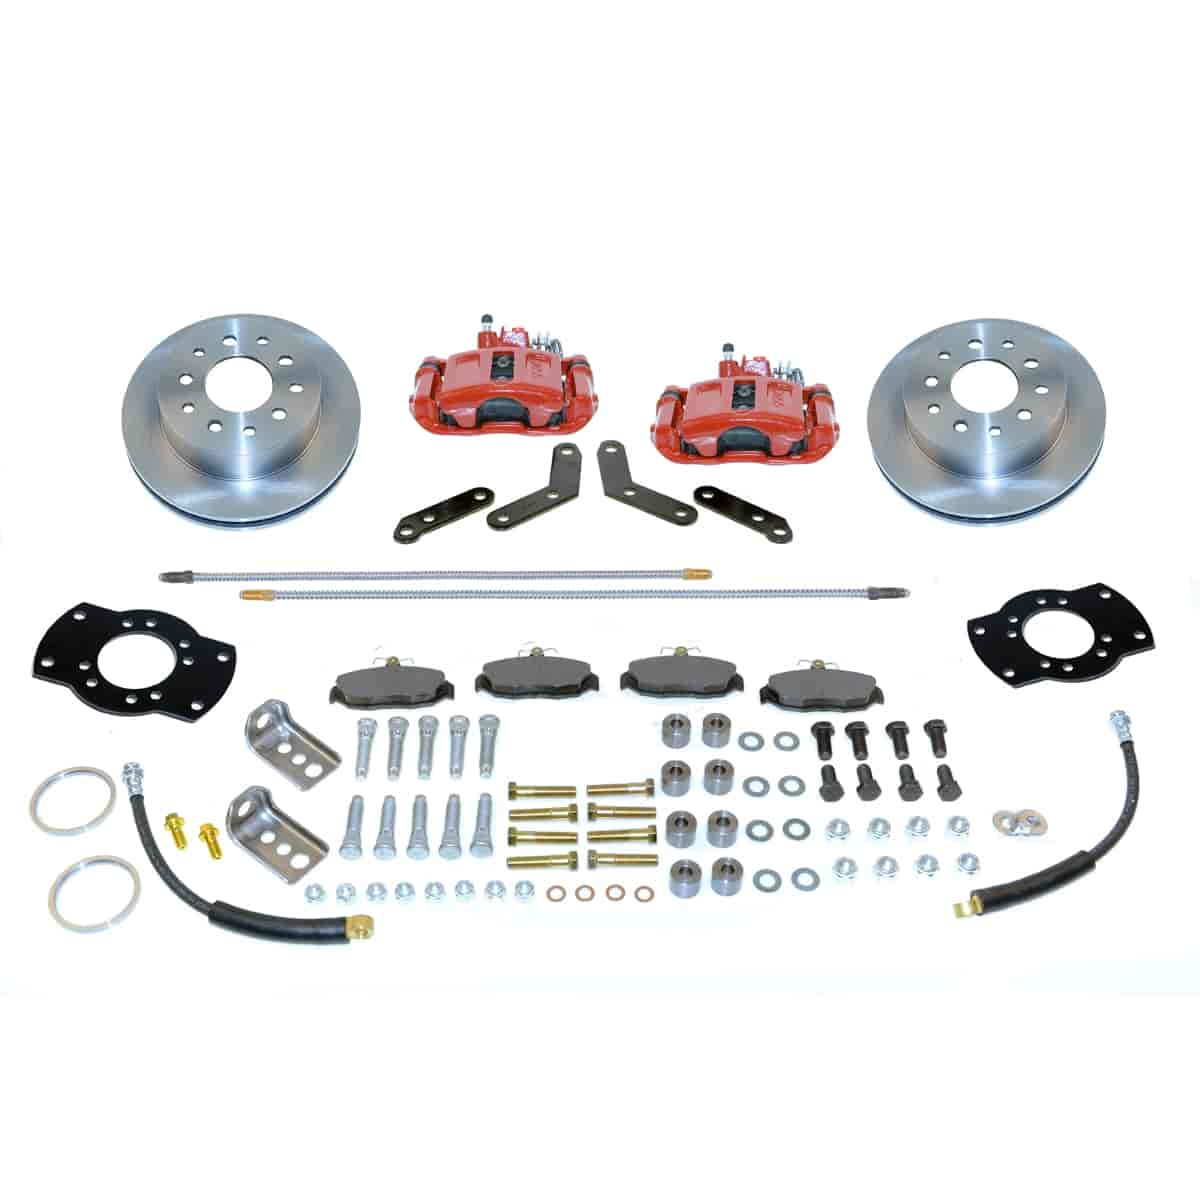 SSBC A126-1R - Stainless Steel Brakes Single Piston Rear Drum to Disc Brake Conversion Kits